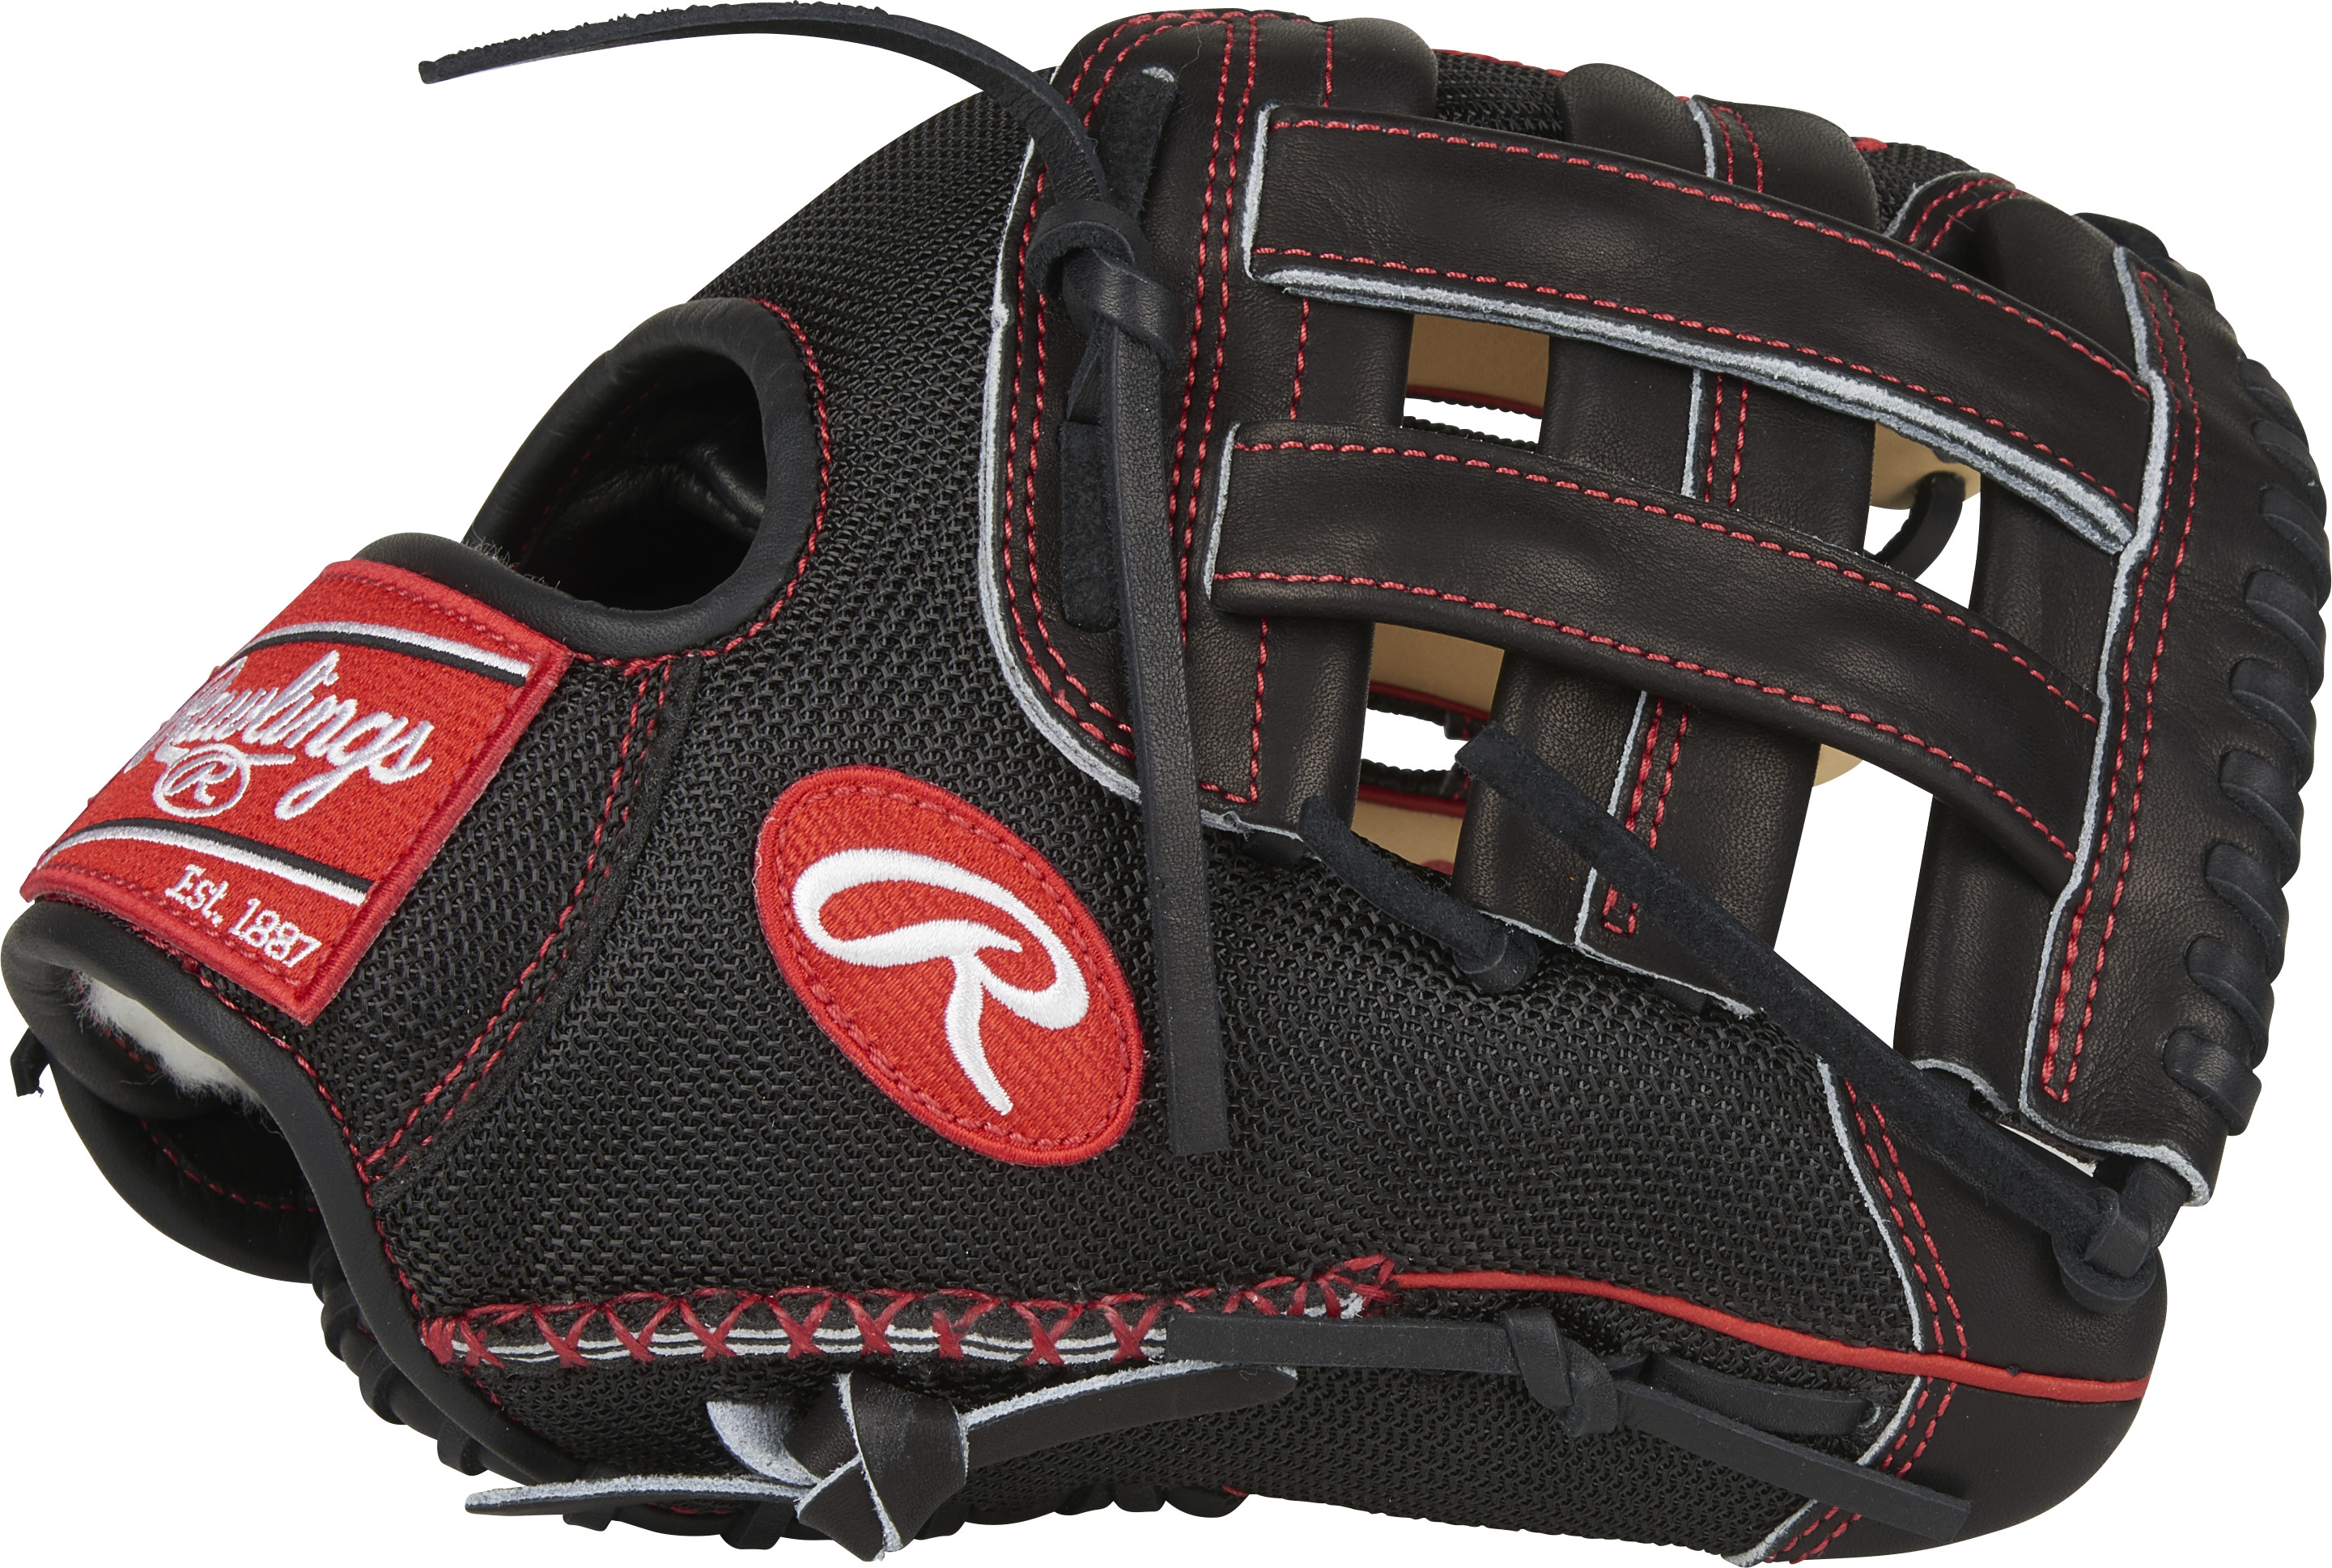 http://www.bestbatdeals.com/images/gloves/rawlings/PROS205-6CM-3.jpg